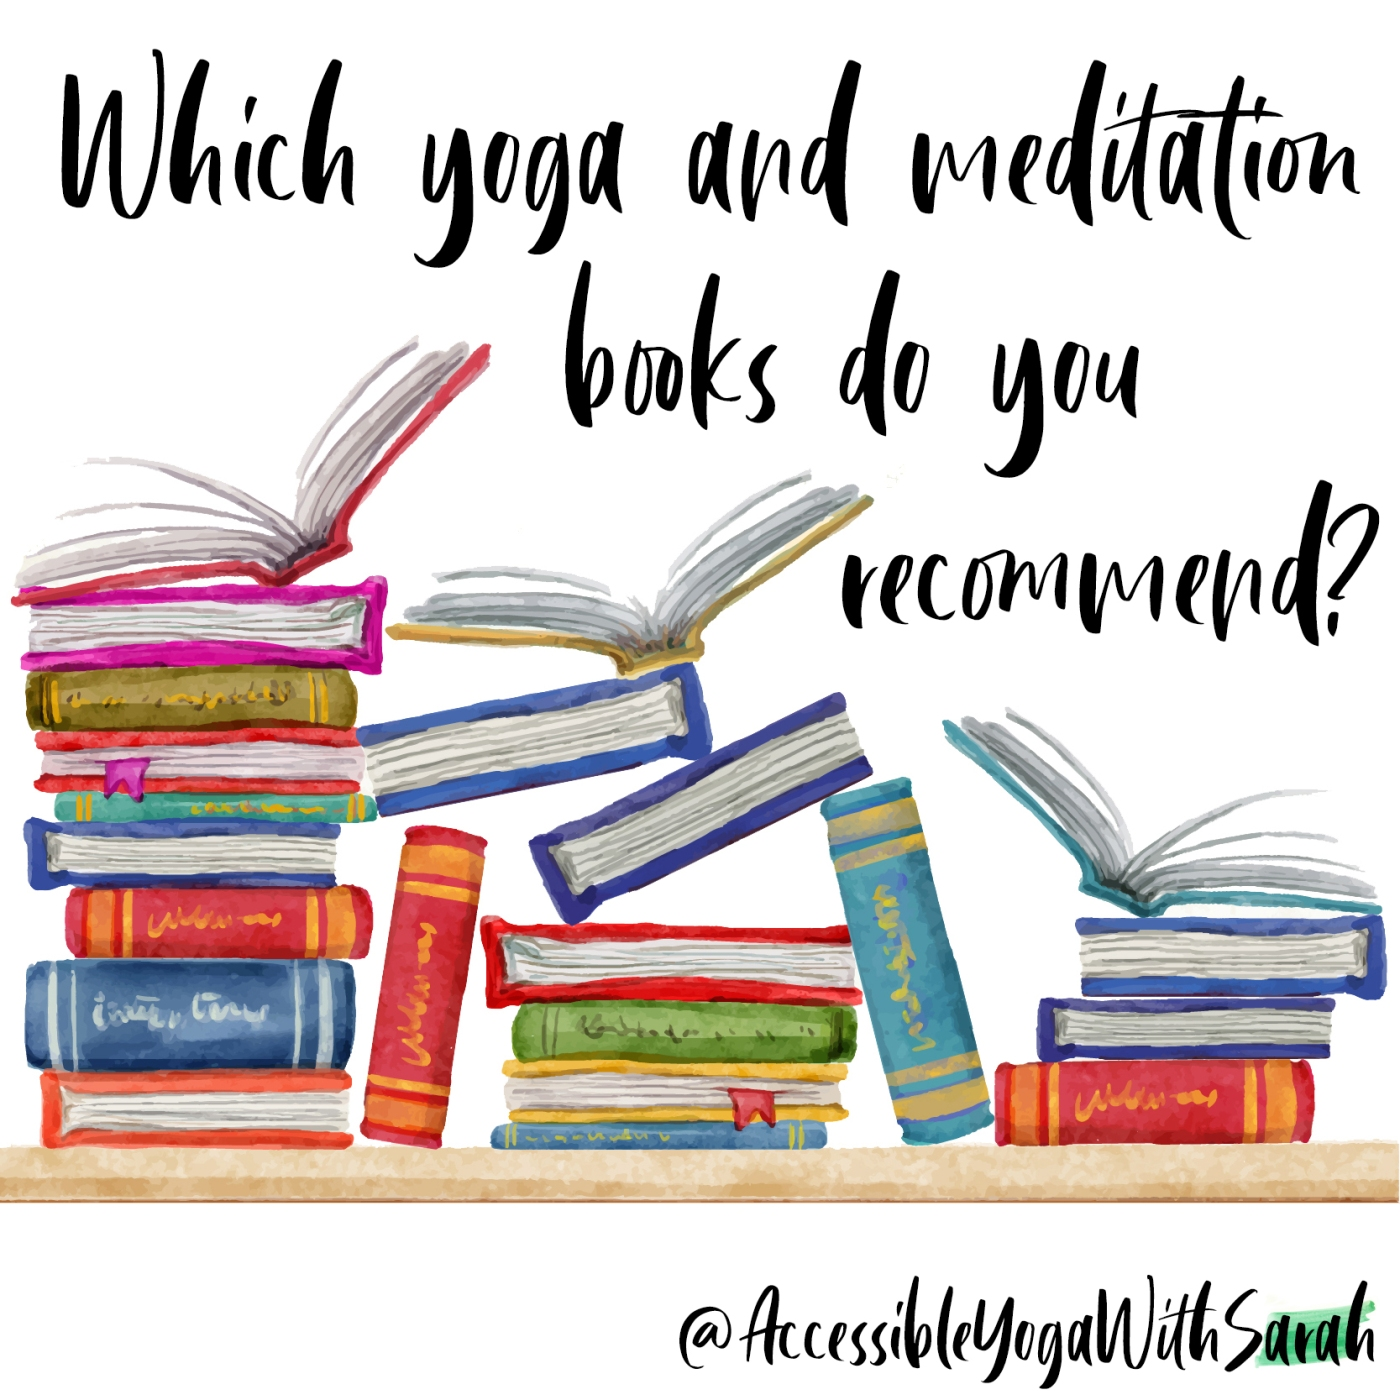 A watercolour image of stacks of books with the question 'Which yoga and meditation books do you recommend?' at the top.